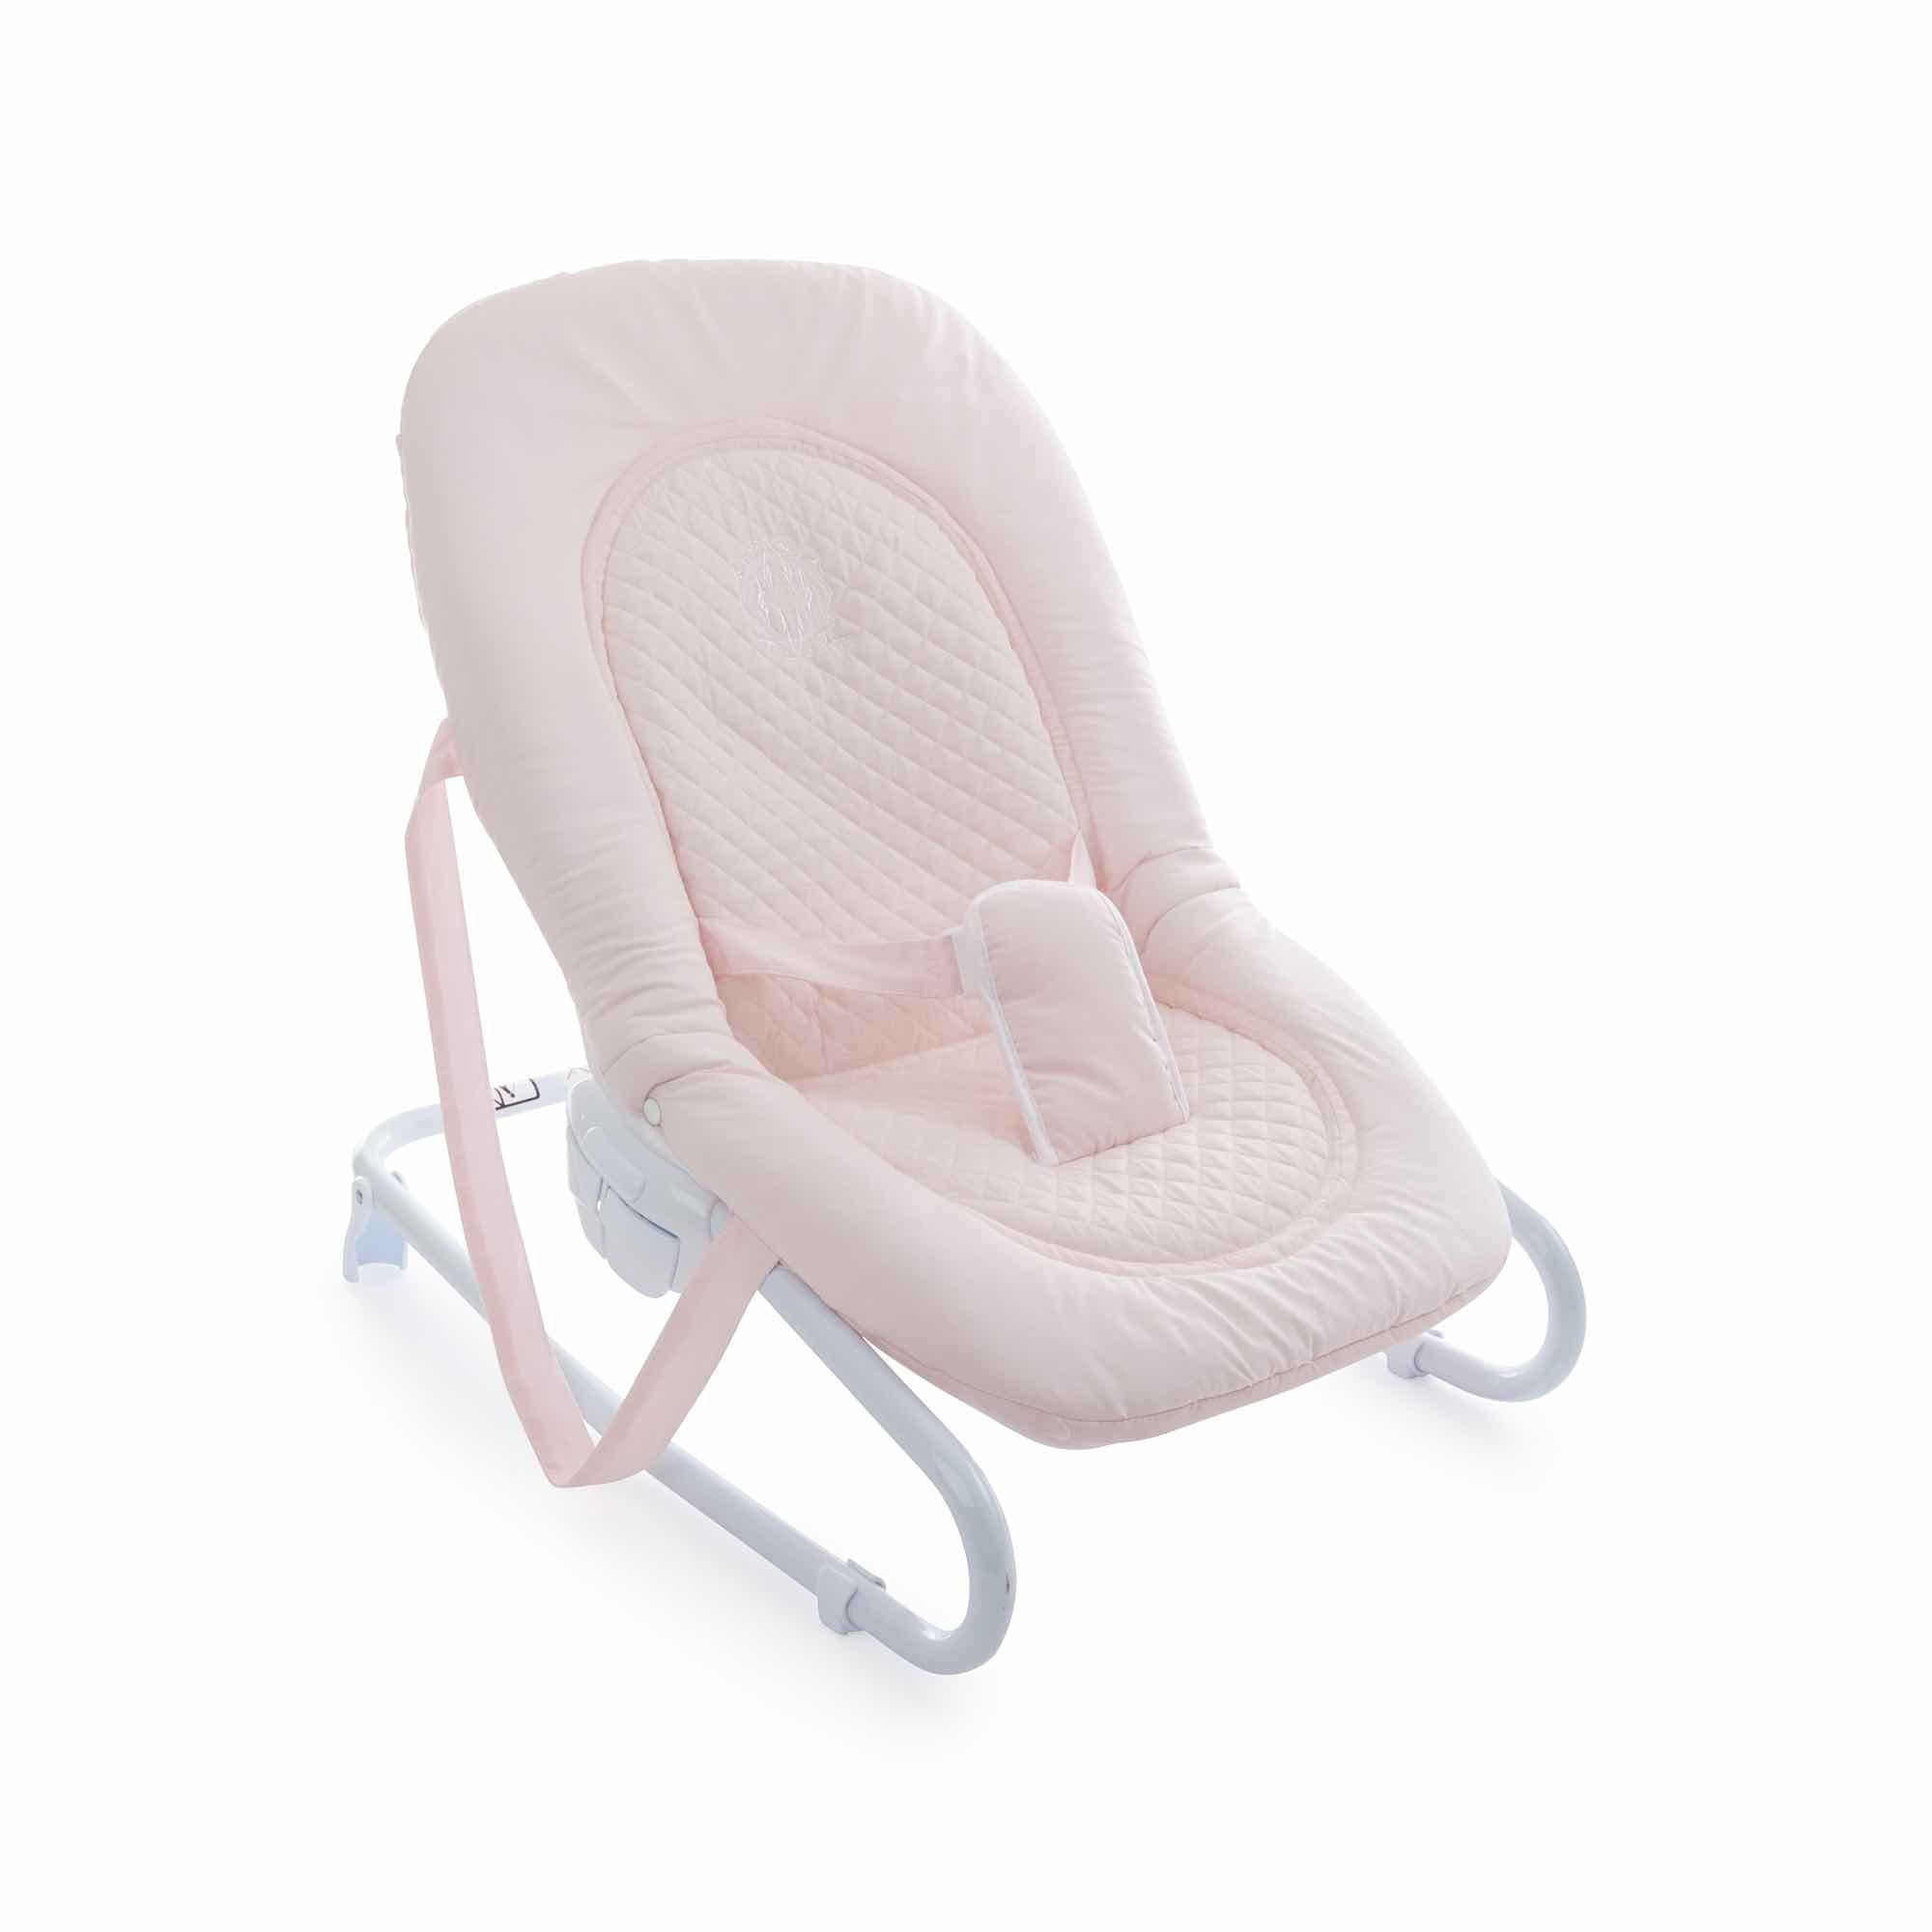 Theophile & Patachou Bouncer Baby Seat - Royal Pink